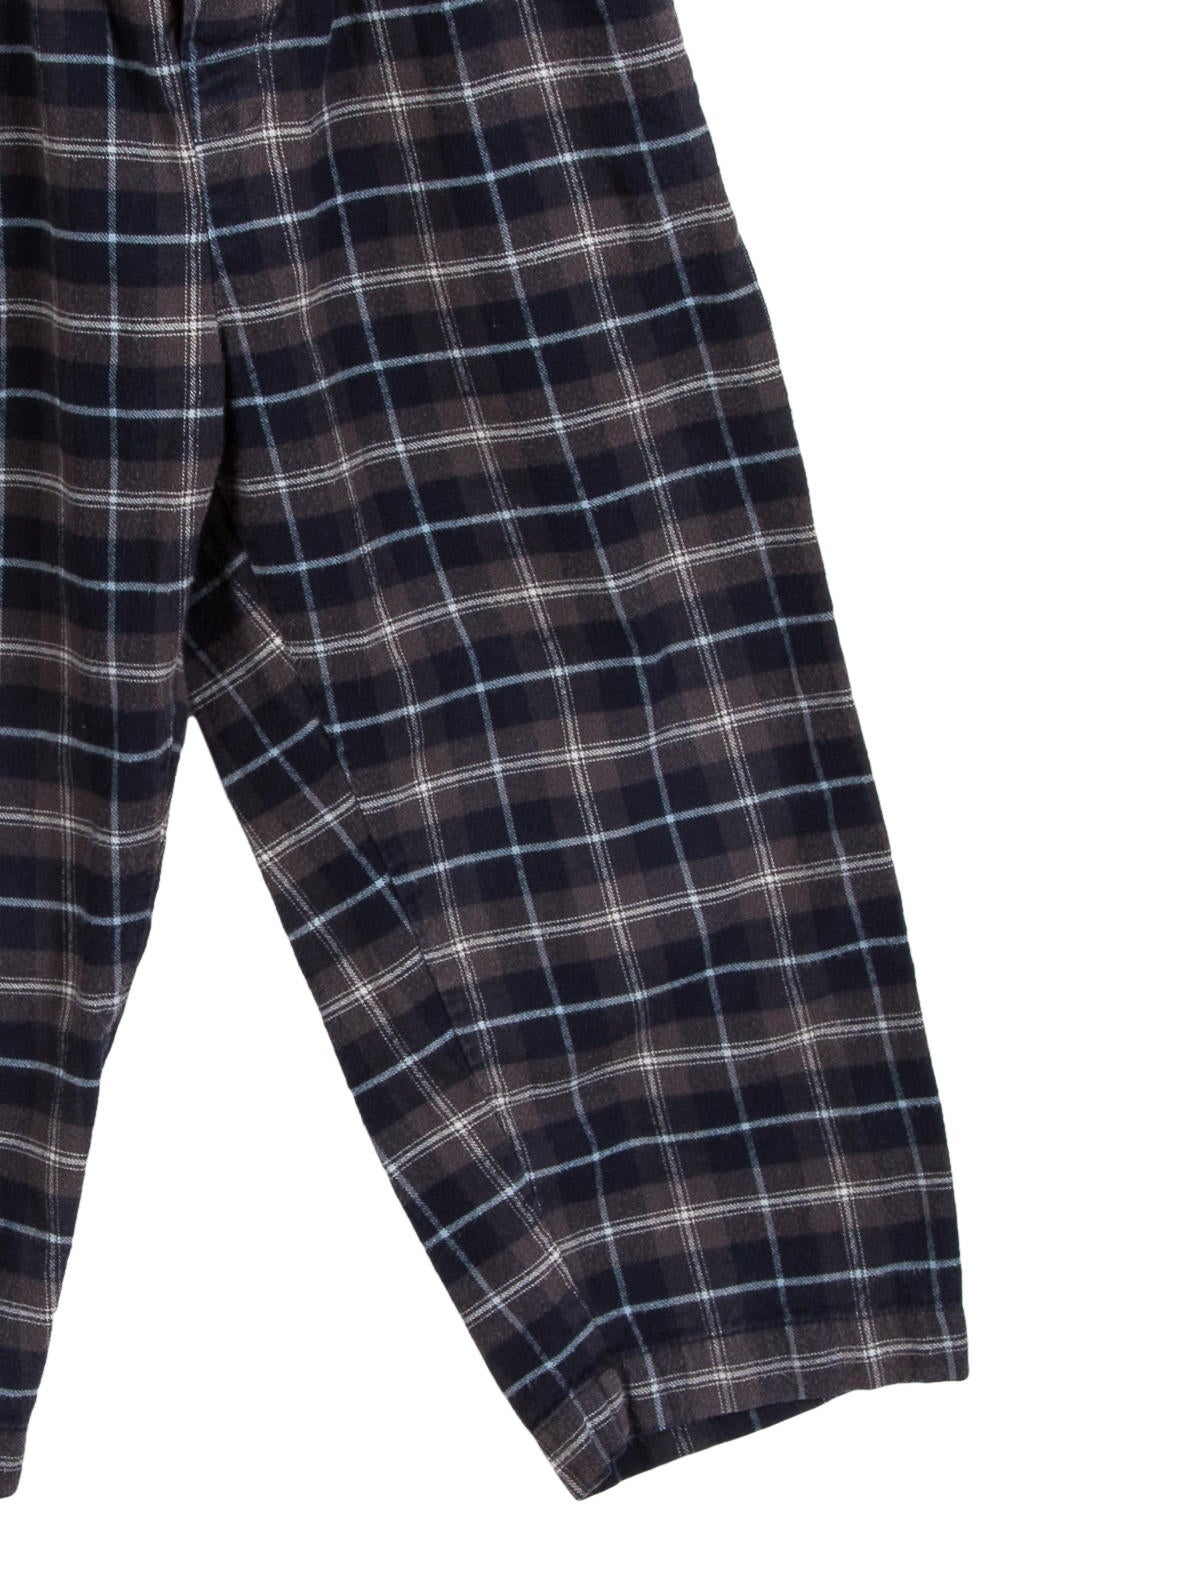 You searched for: boy plaid pants! Etsy is the home to thousands of handmade, vintage, and one-of-a-kind products and gifts related to your search. No matter what you're looking for or where you are in the world, our global marketplace of sellers can help you find unique and affordable options. Let's get started!